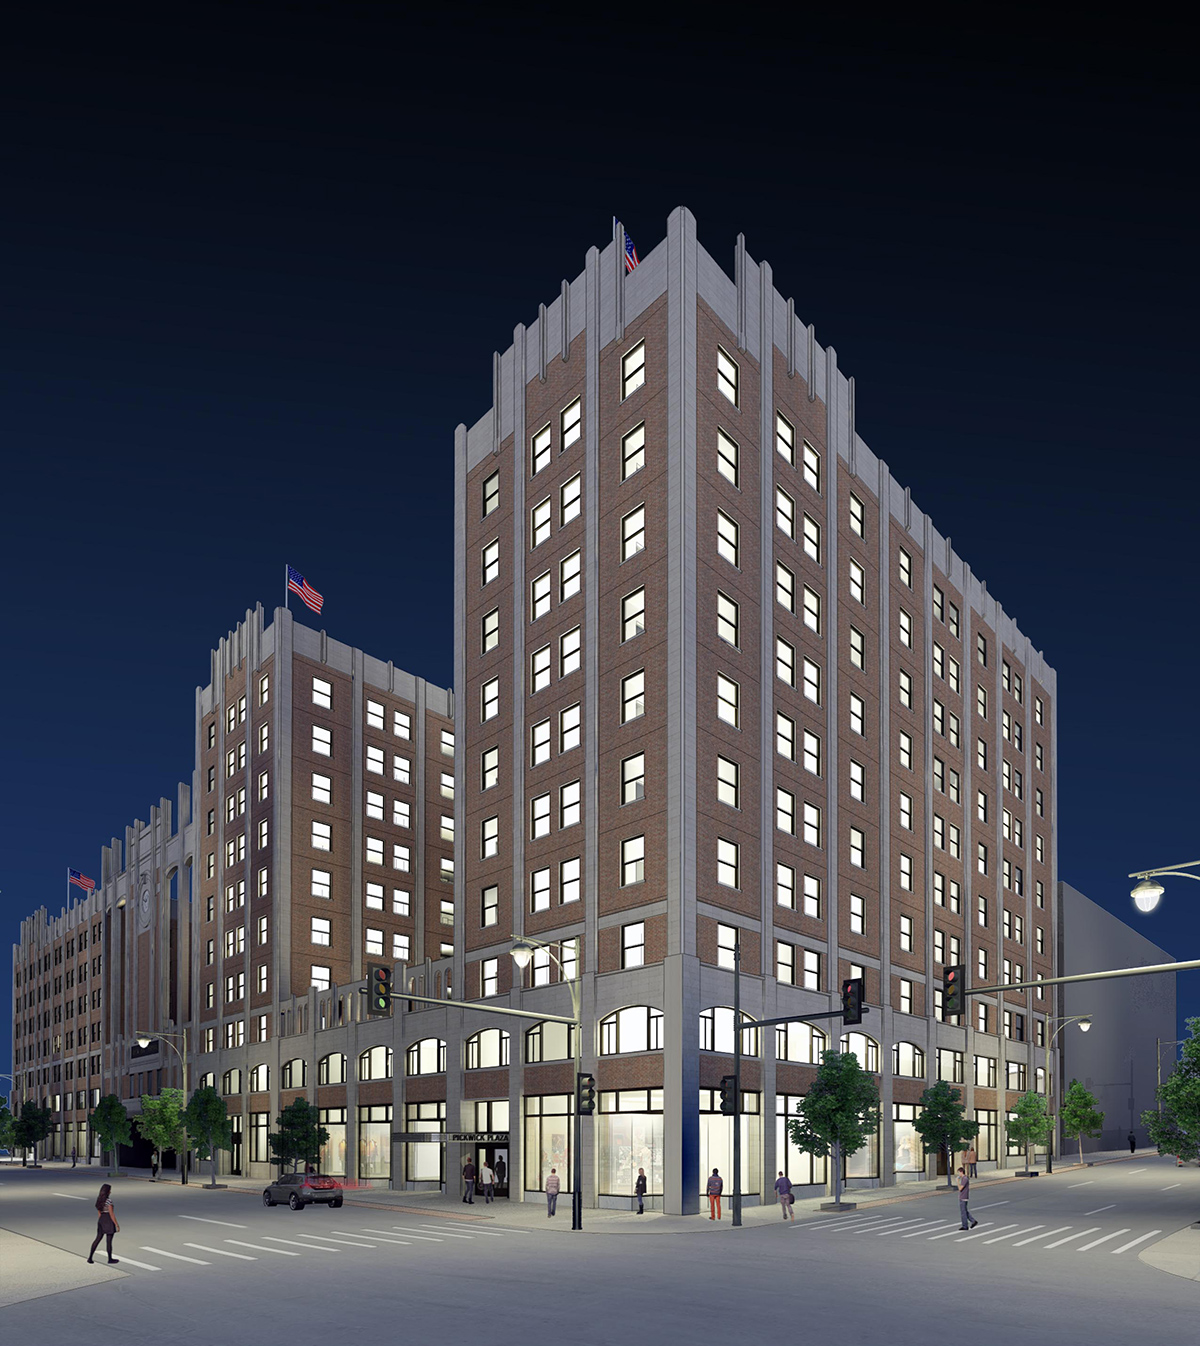 Helix Architecture Design Project Crossroads Parking: Kansas City's Pickwick Plaza Hotel Undergoing Major